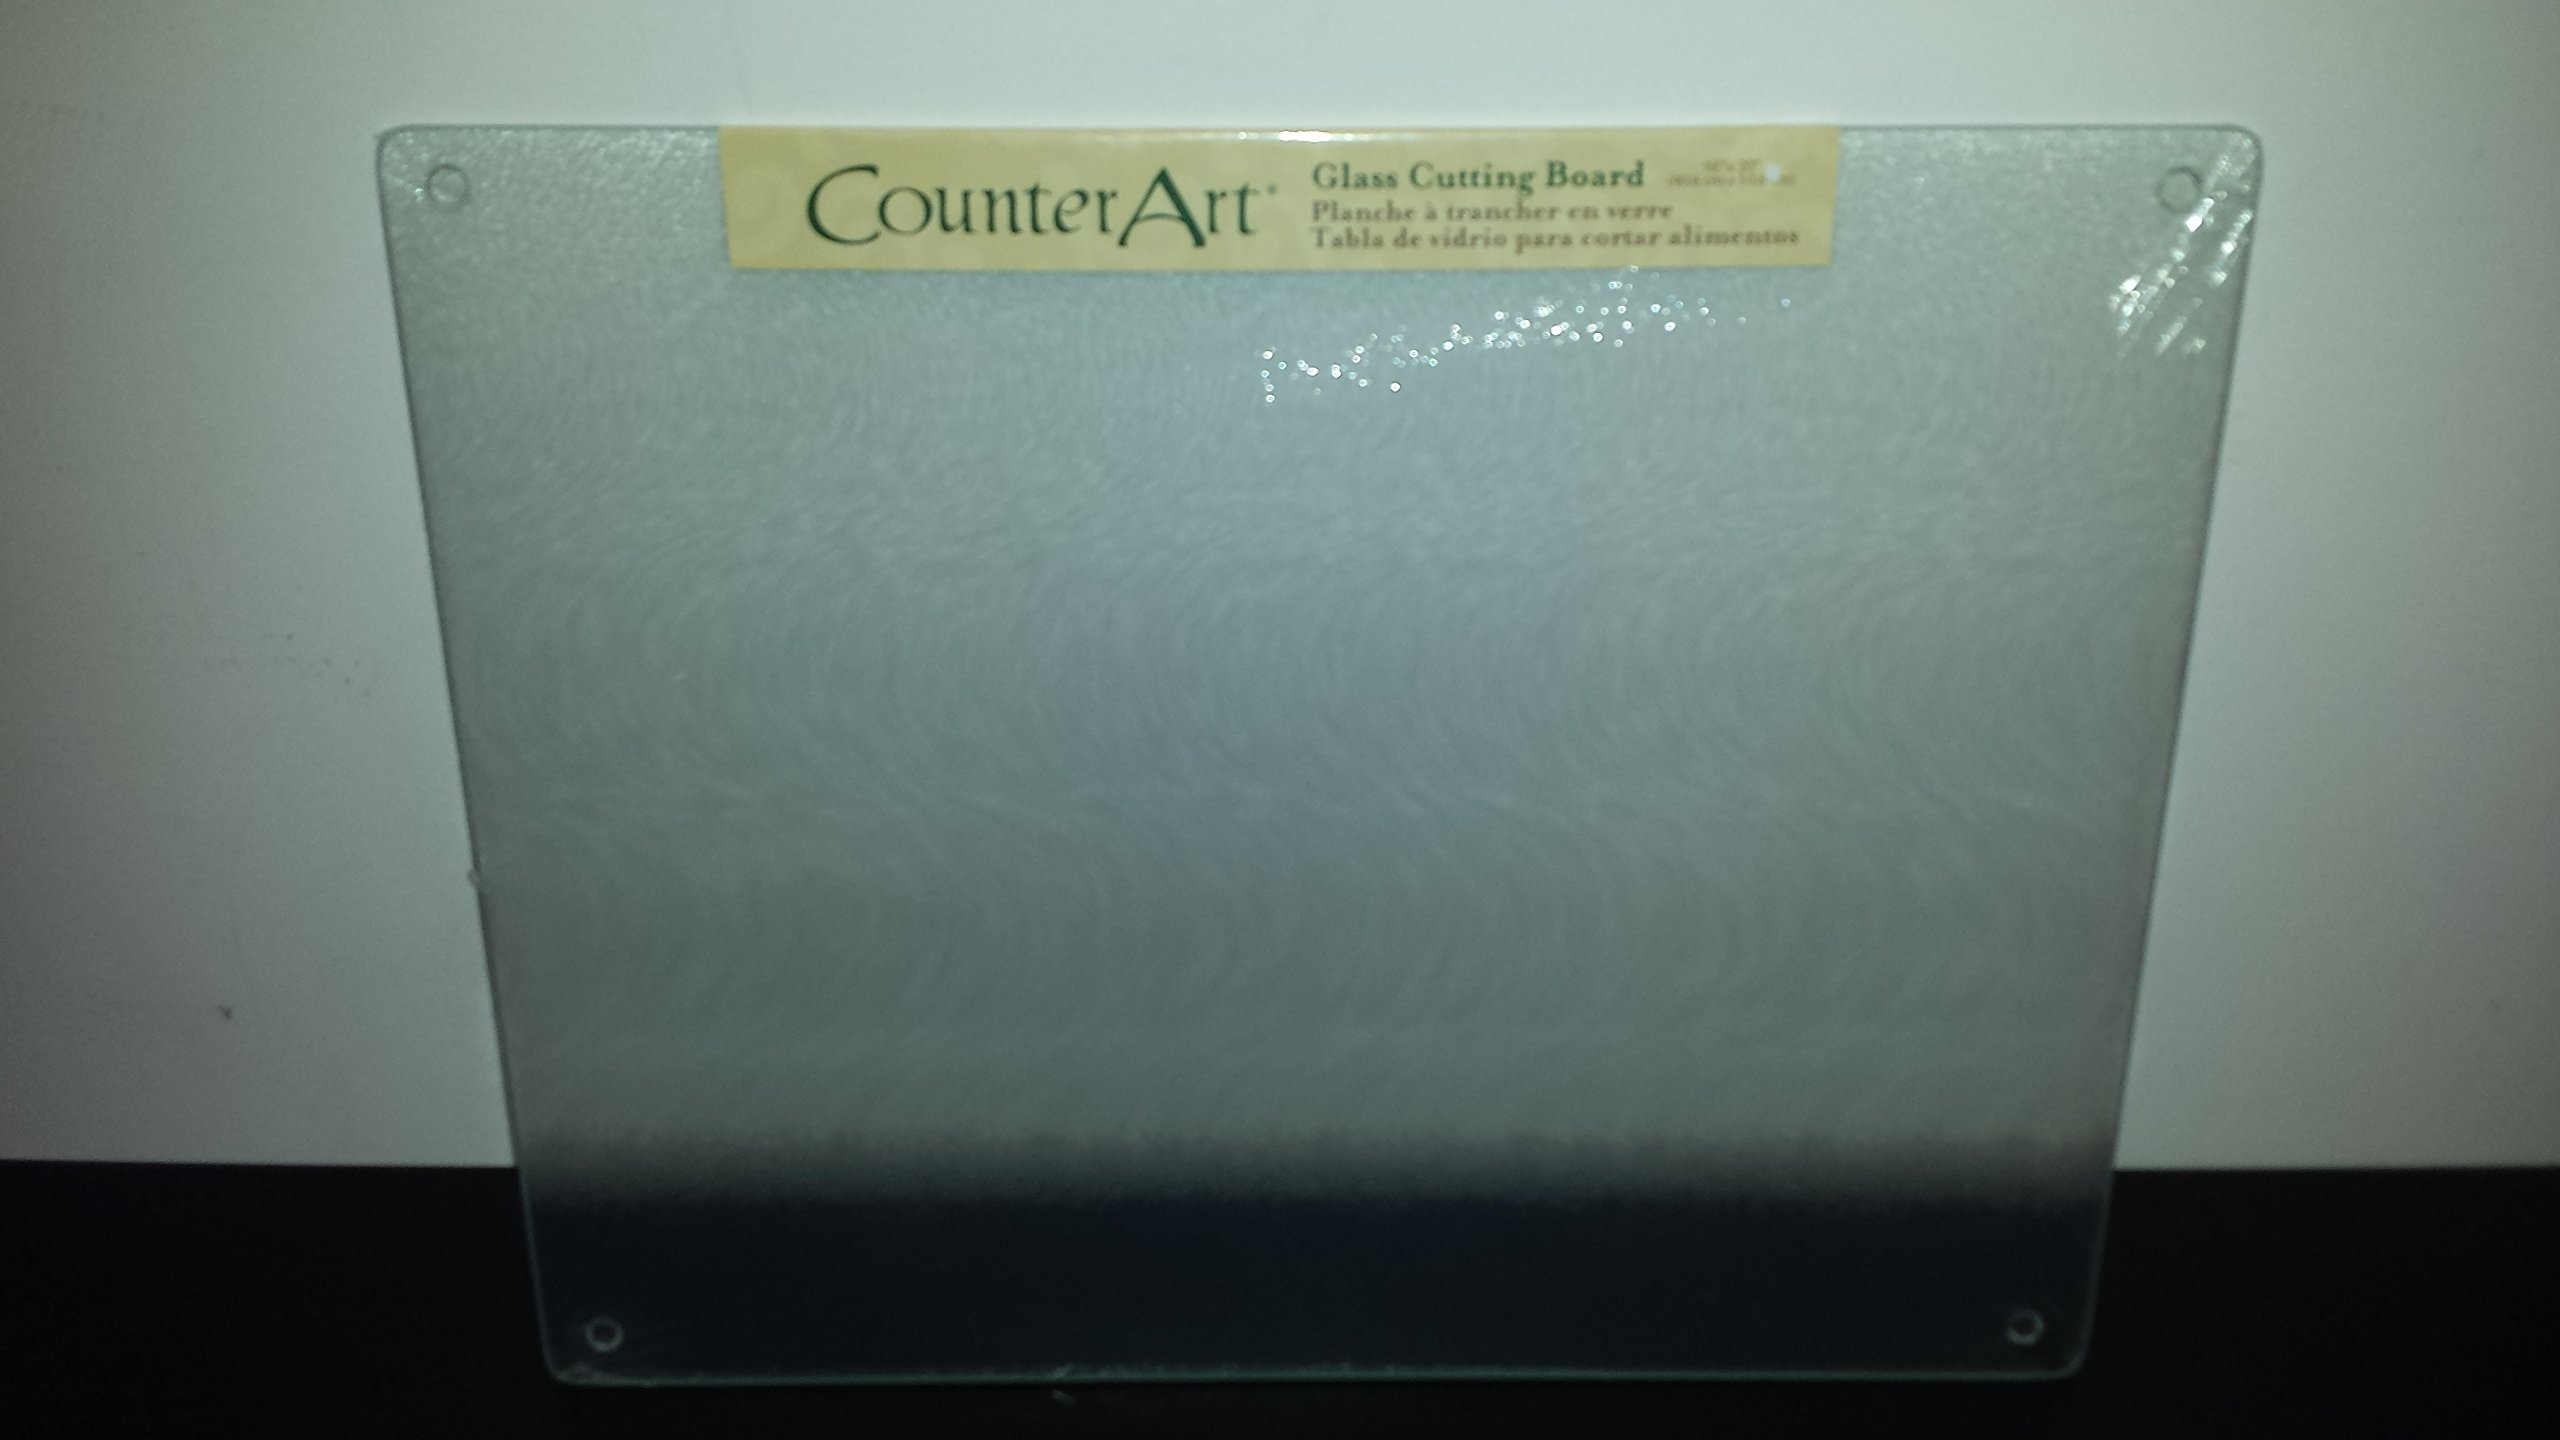 Surface saver tempered glass cutting board 20 x 16 inch clear 20 x 16 inch ebay - Decorative tempered glass cutting boards ...